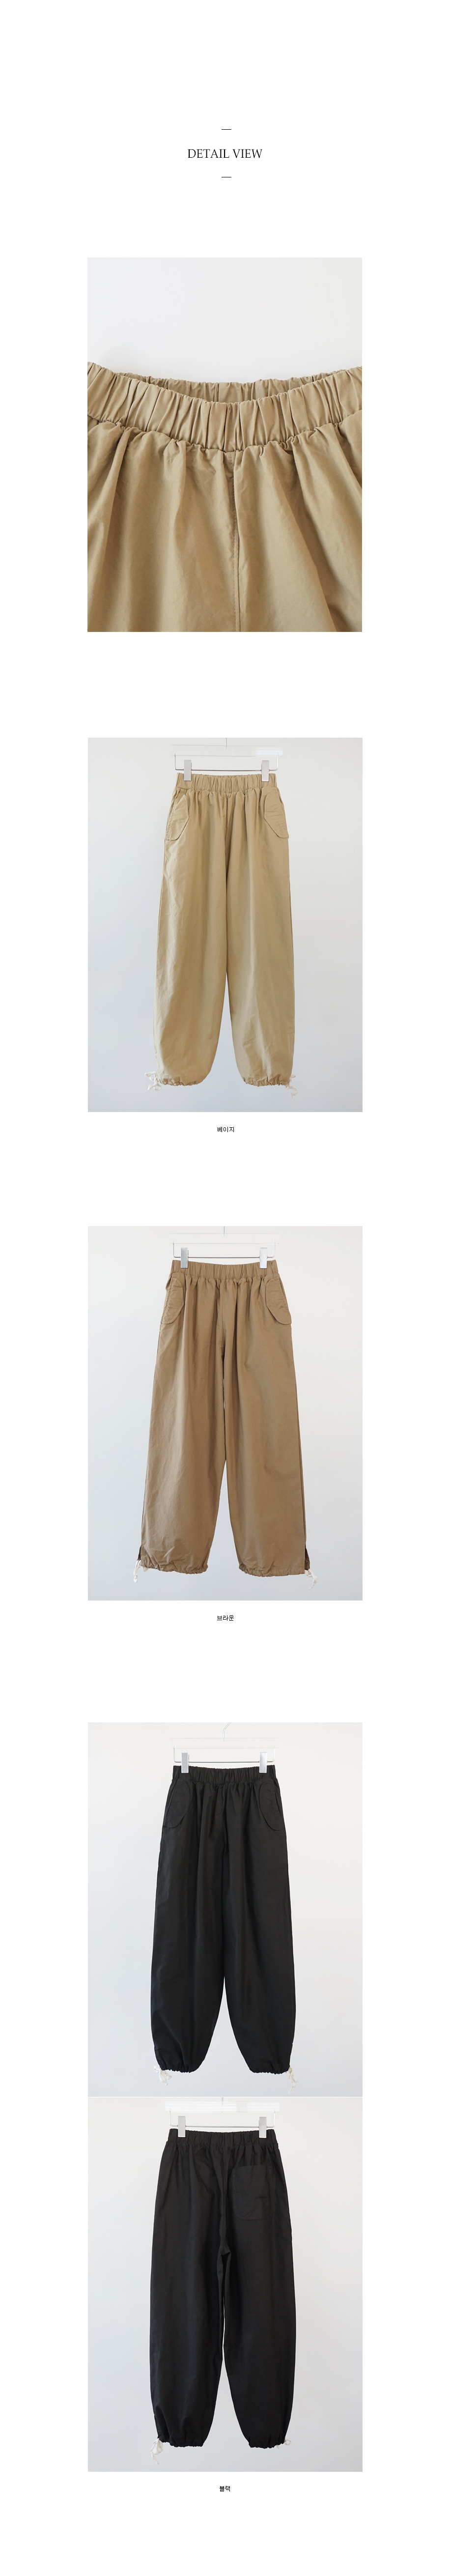 casual mood banding cotton pants (3colors)